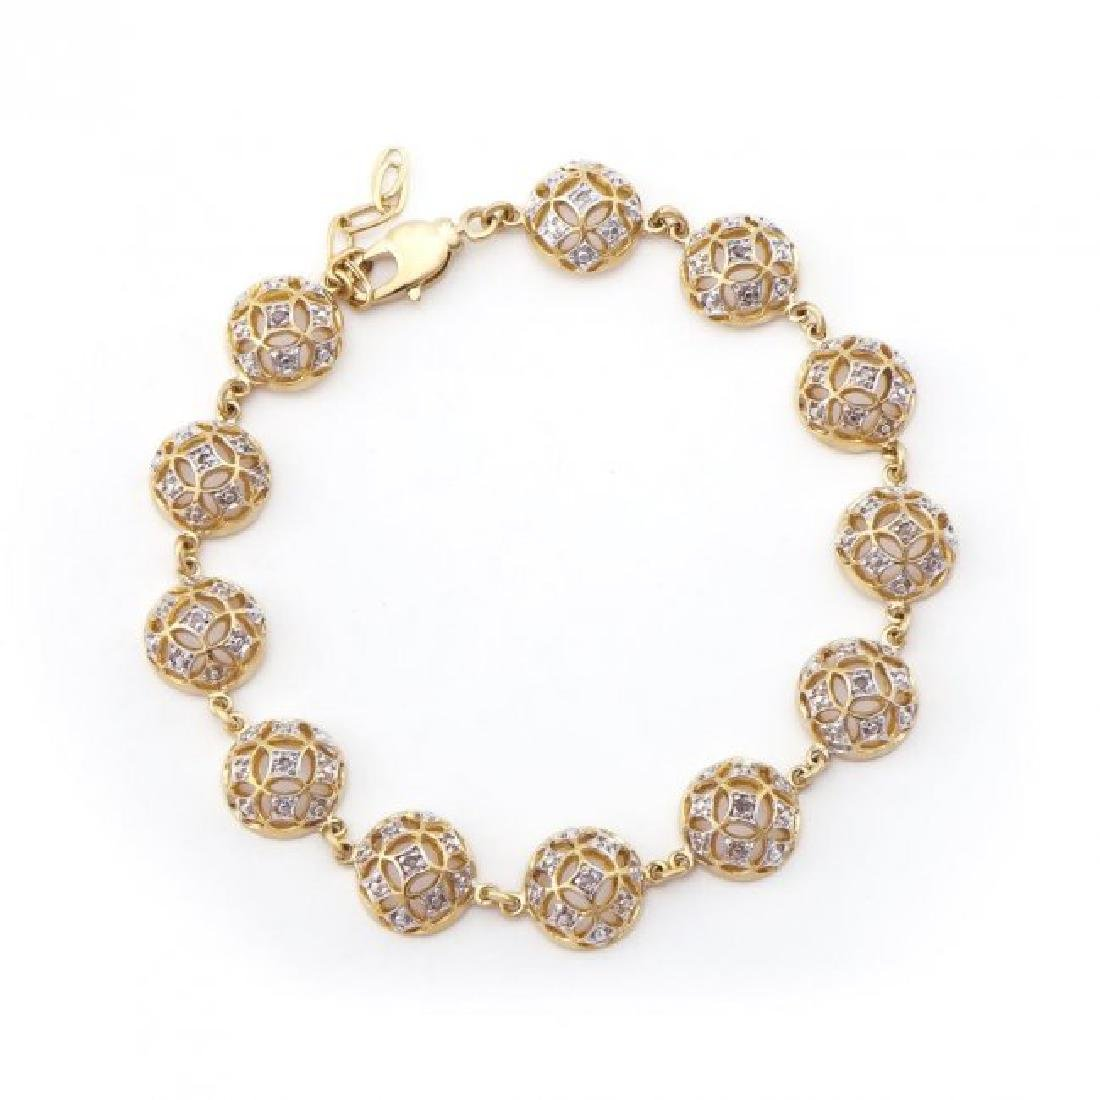 0.67 CT Diamond Designer Bracelet List Price $1,470